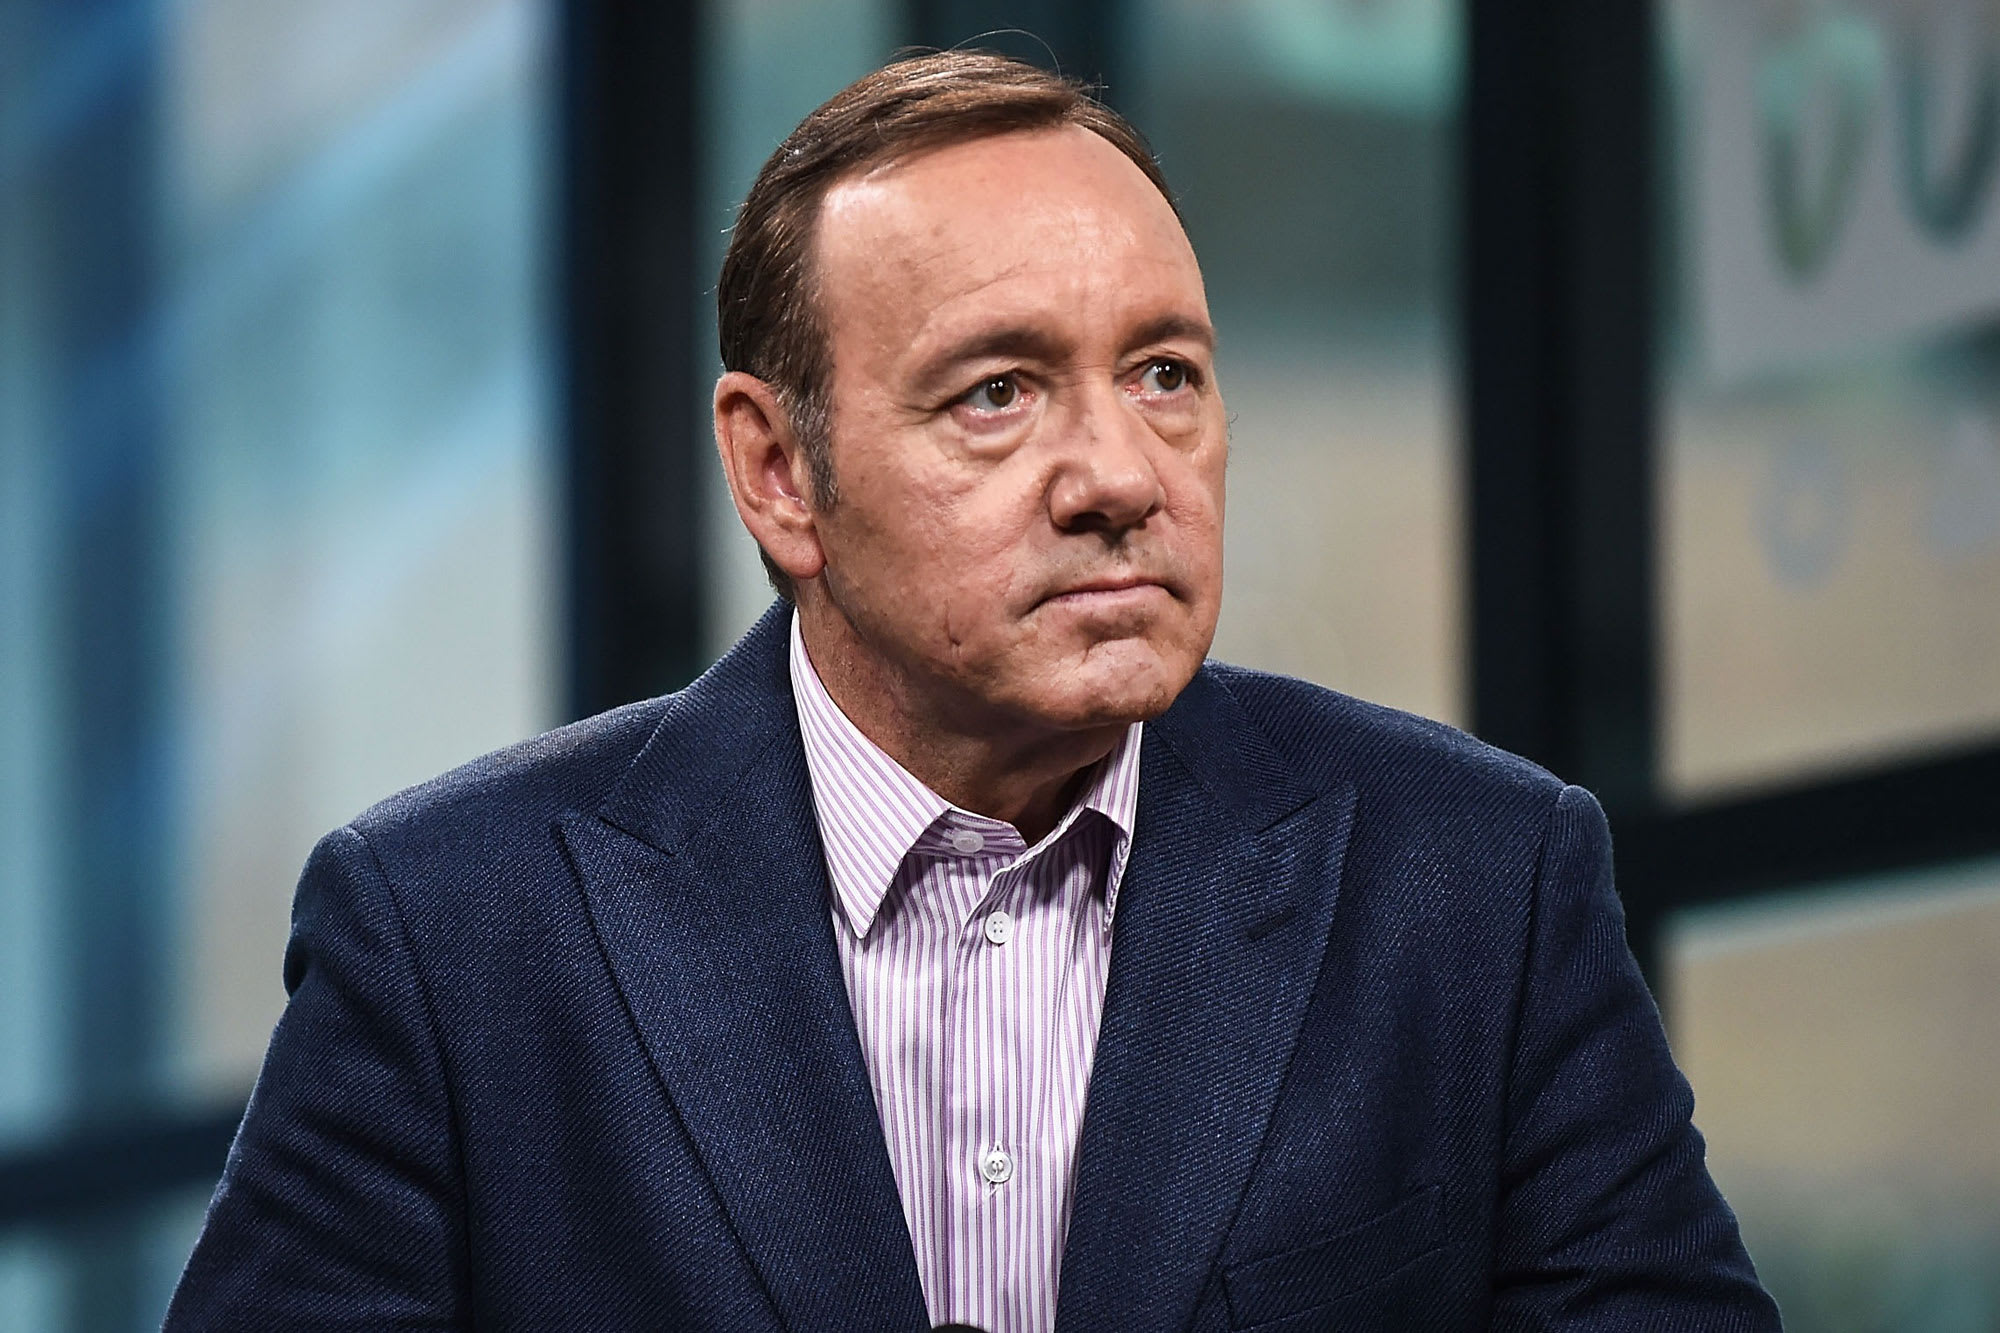 Kevin Spacey Ethnicity, Race, Career and Nationality